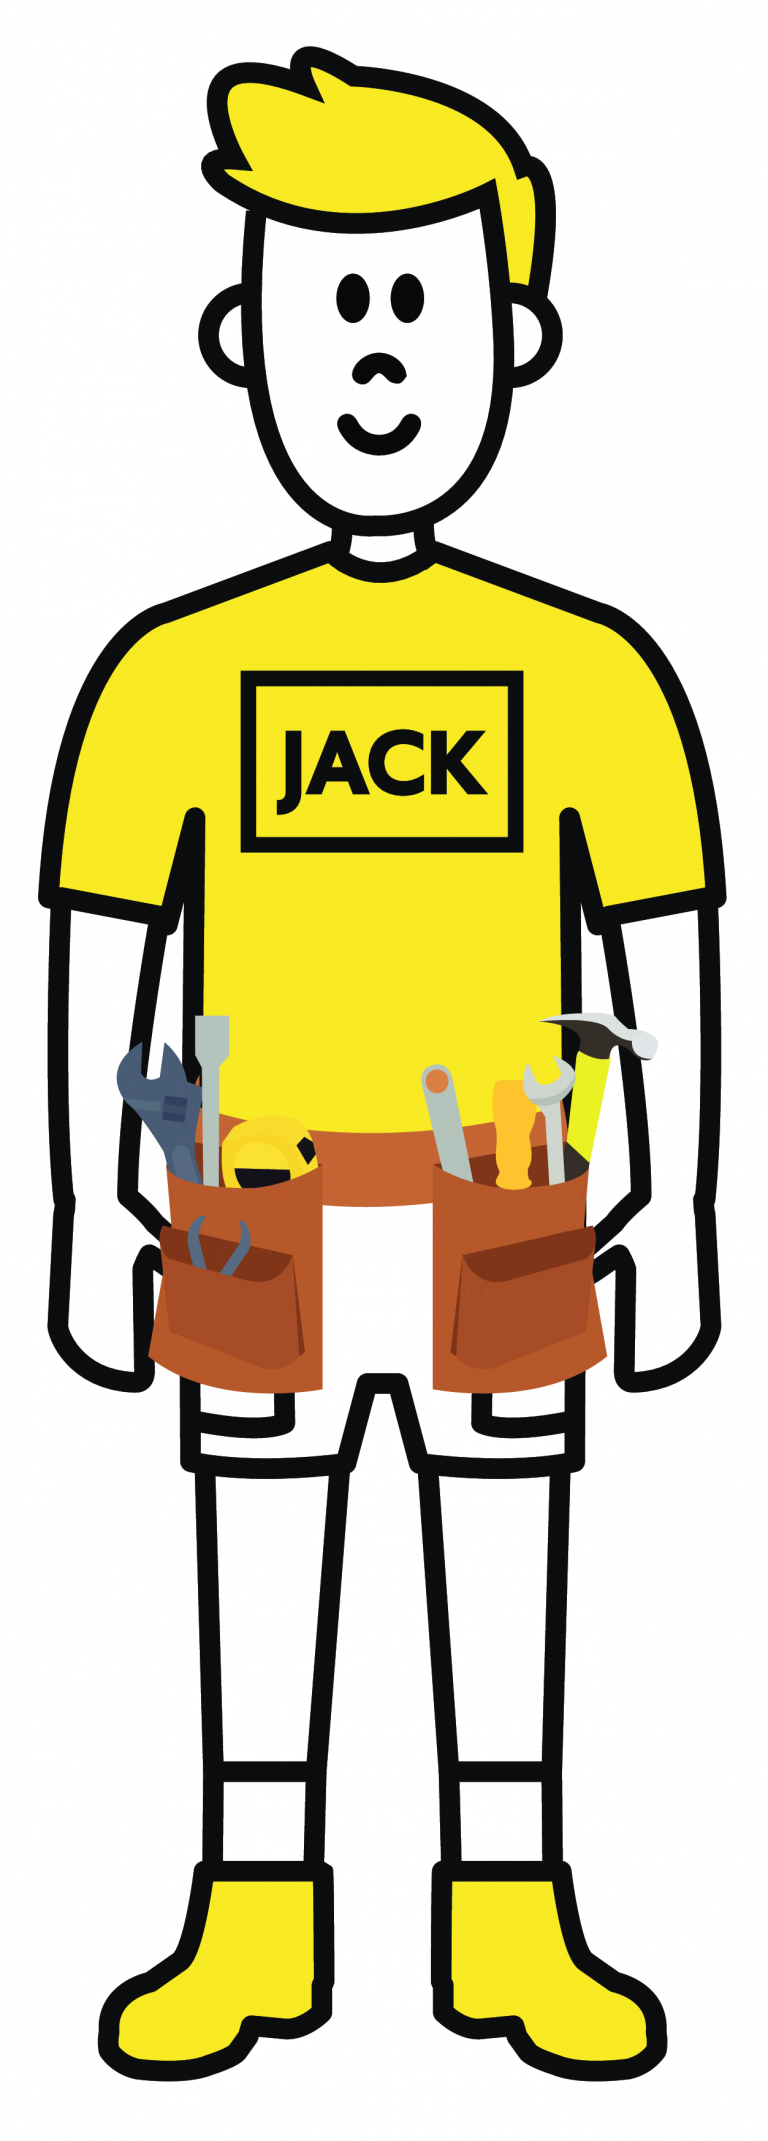 A picture of Jack with his toolbelt